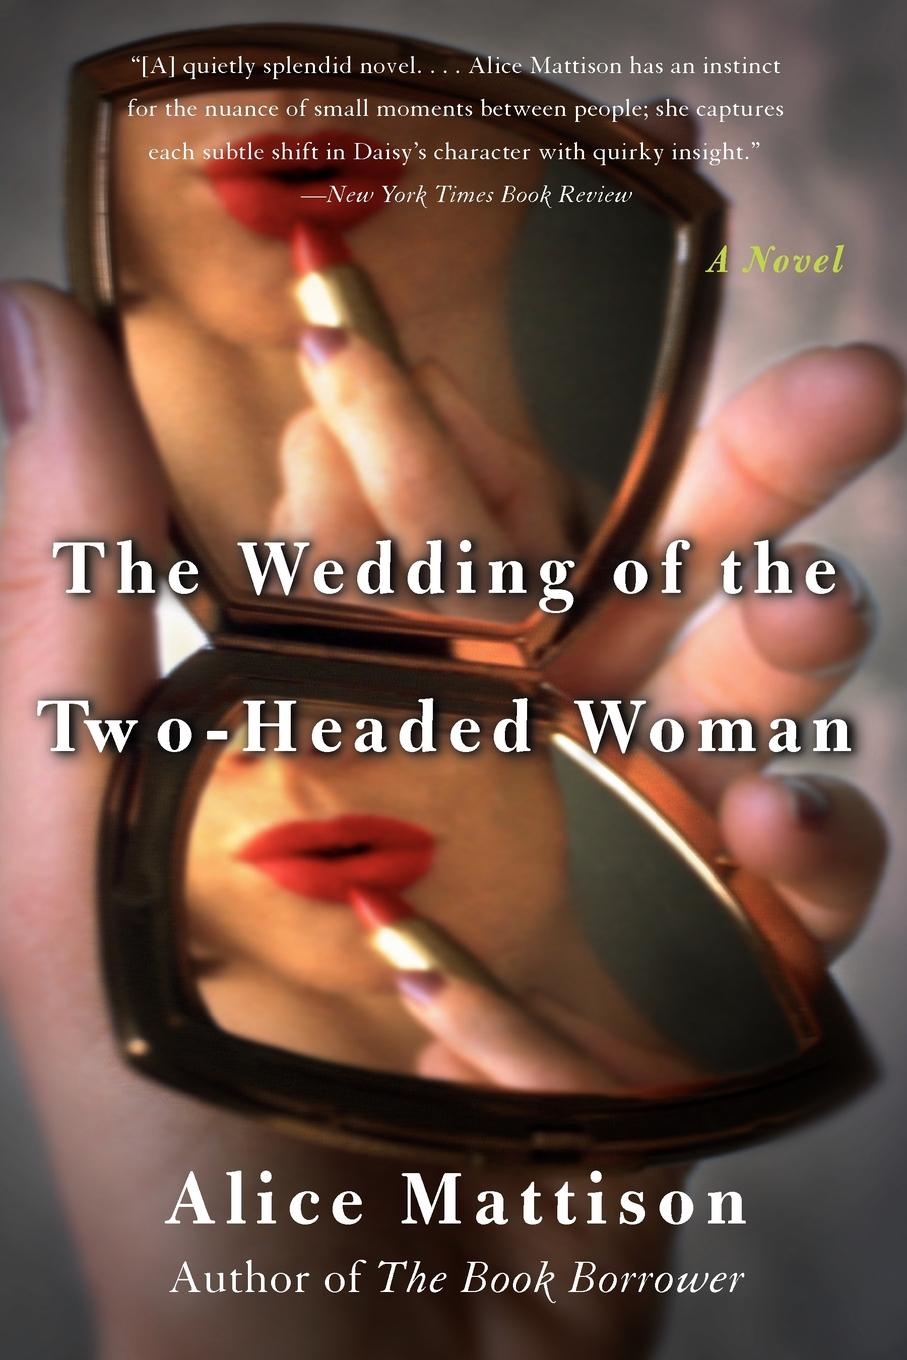 Alice Mattison The Wedding of the Two-Headed Woman